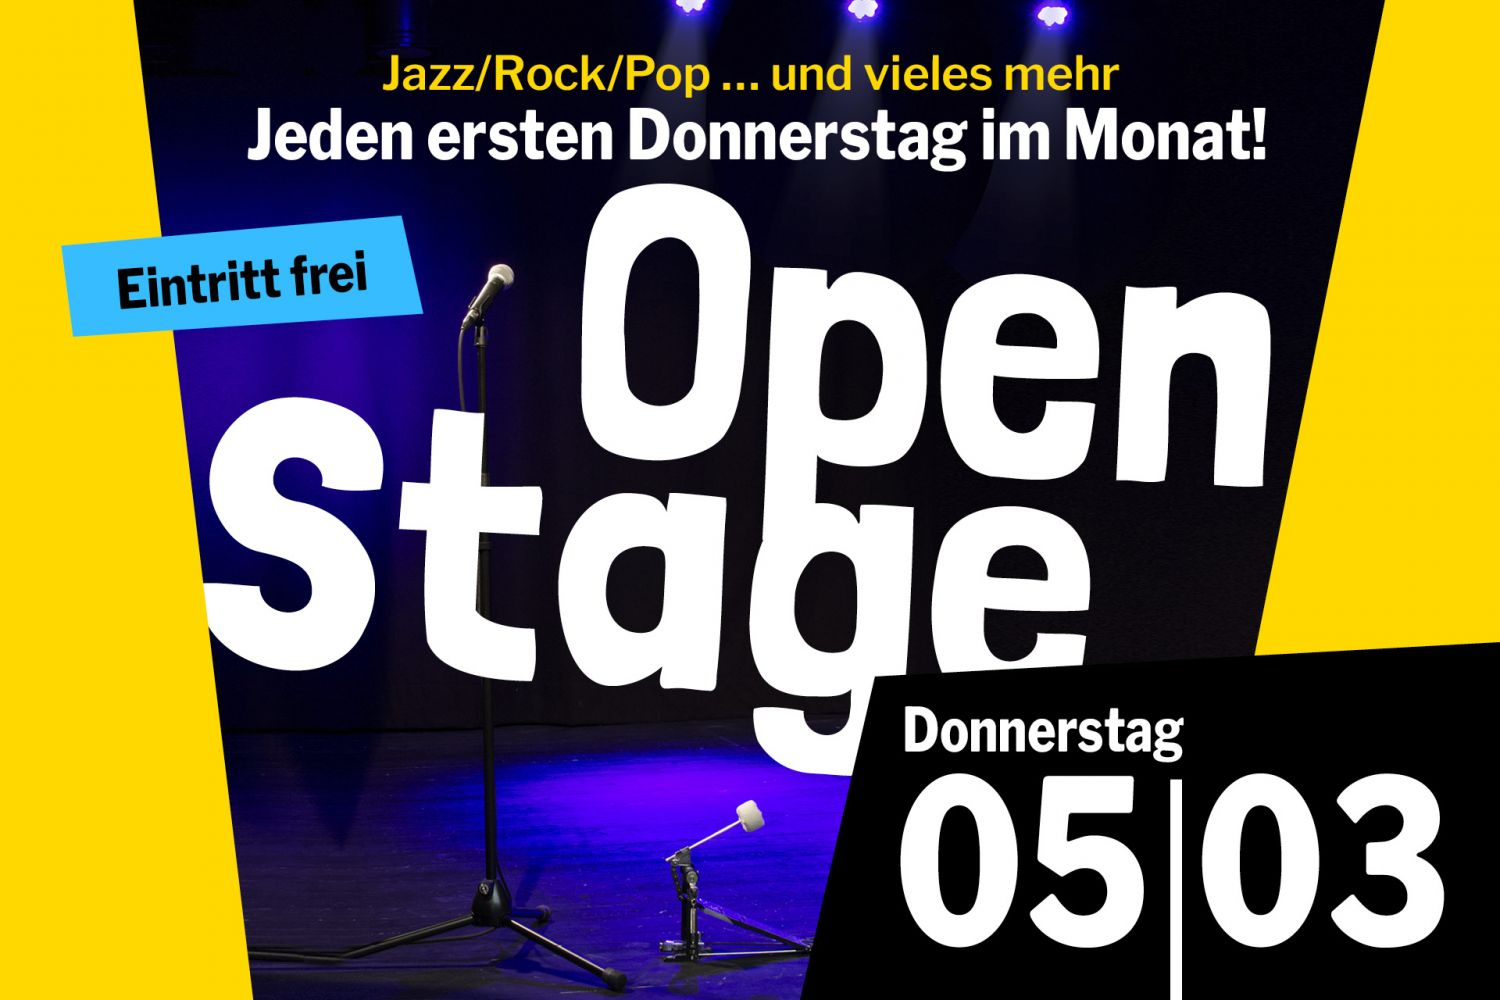 OPEN STAGE # 62 (Donnerstag, 05.03.2020)